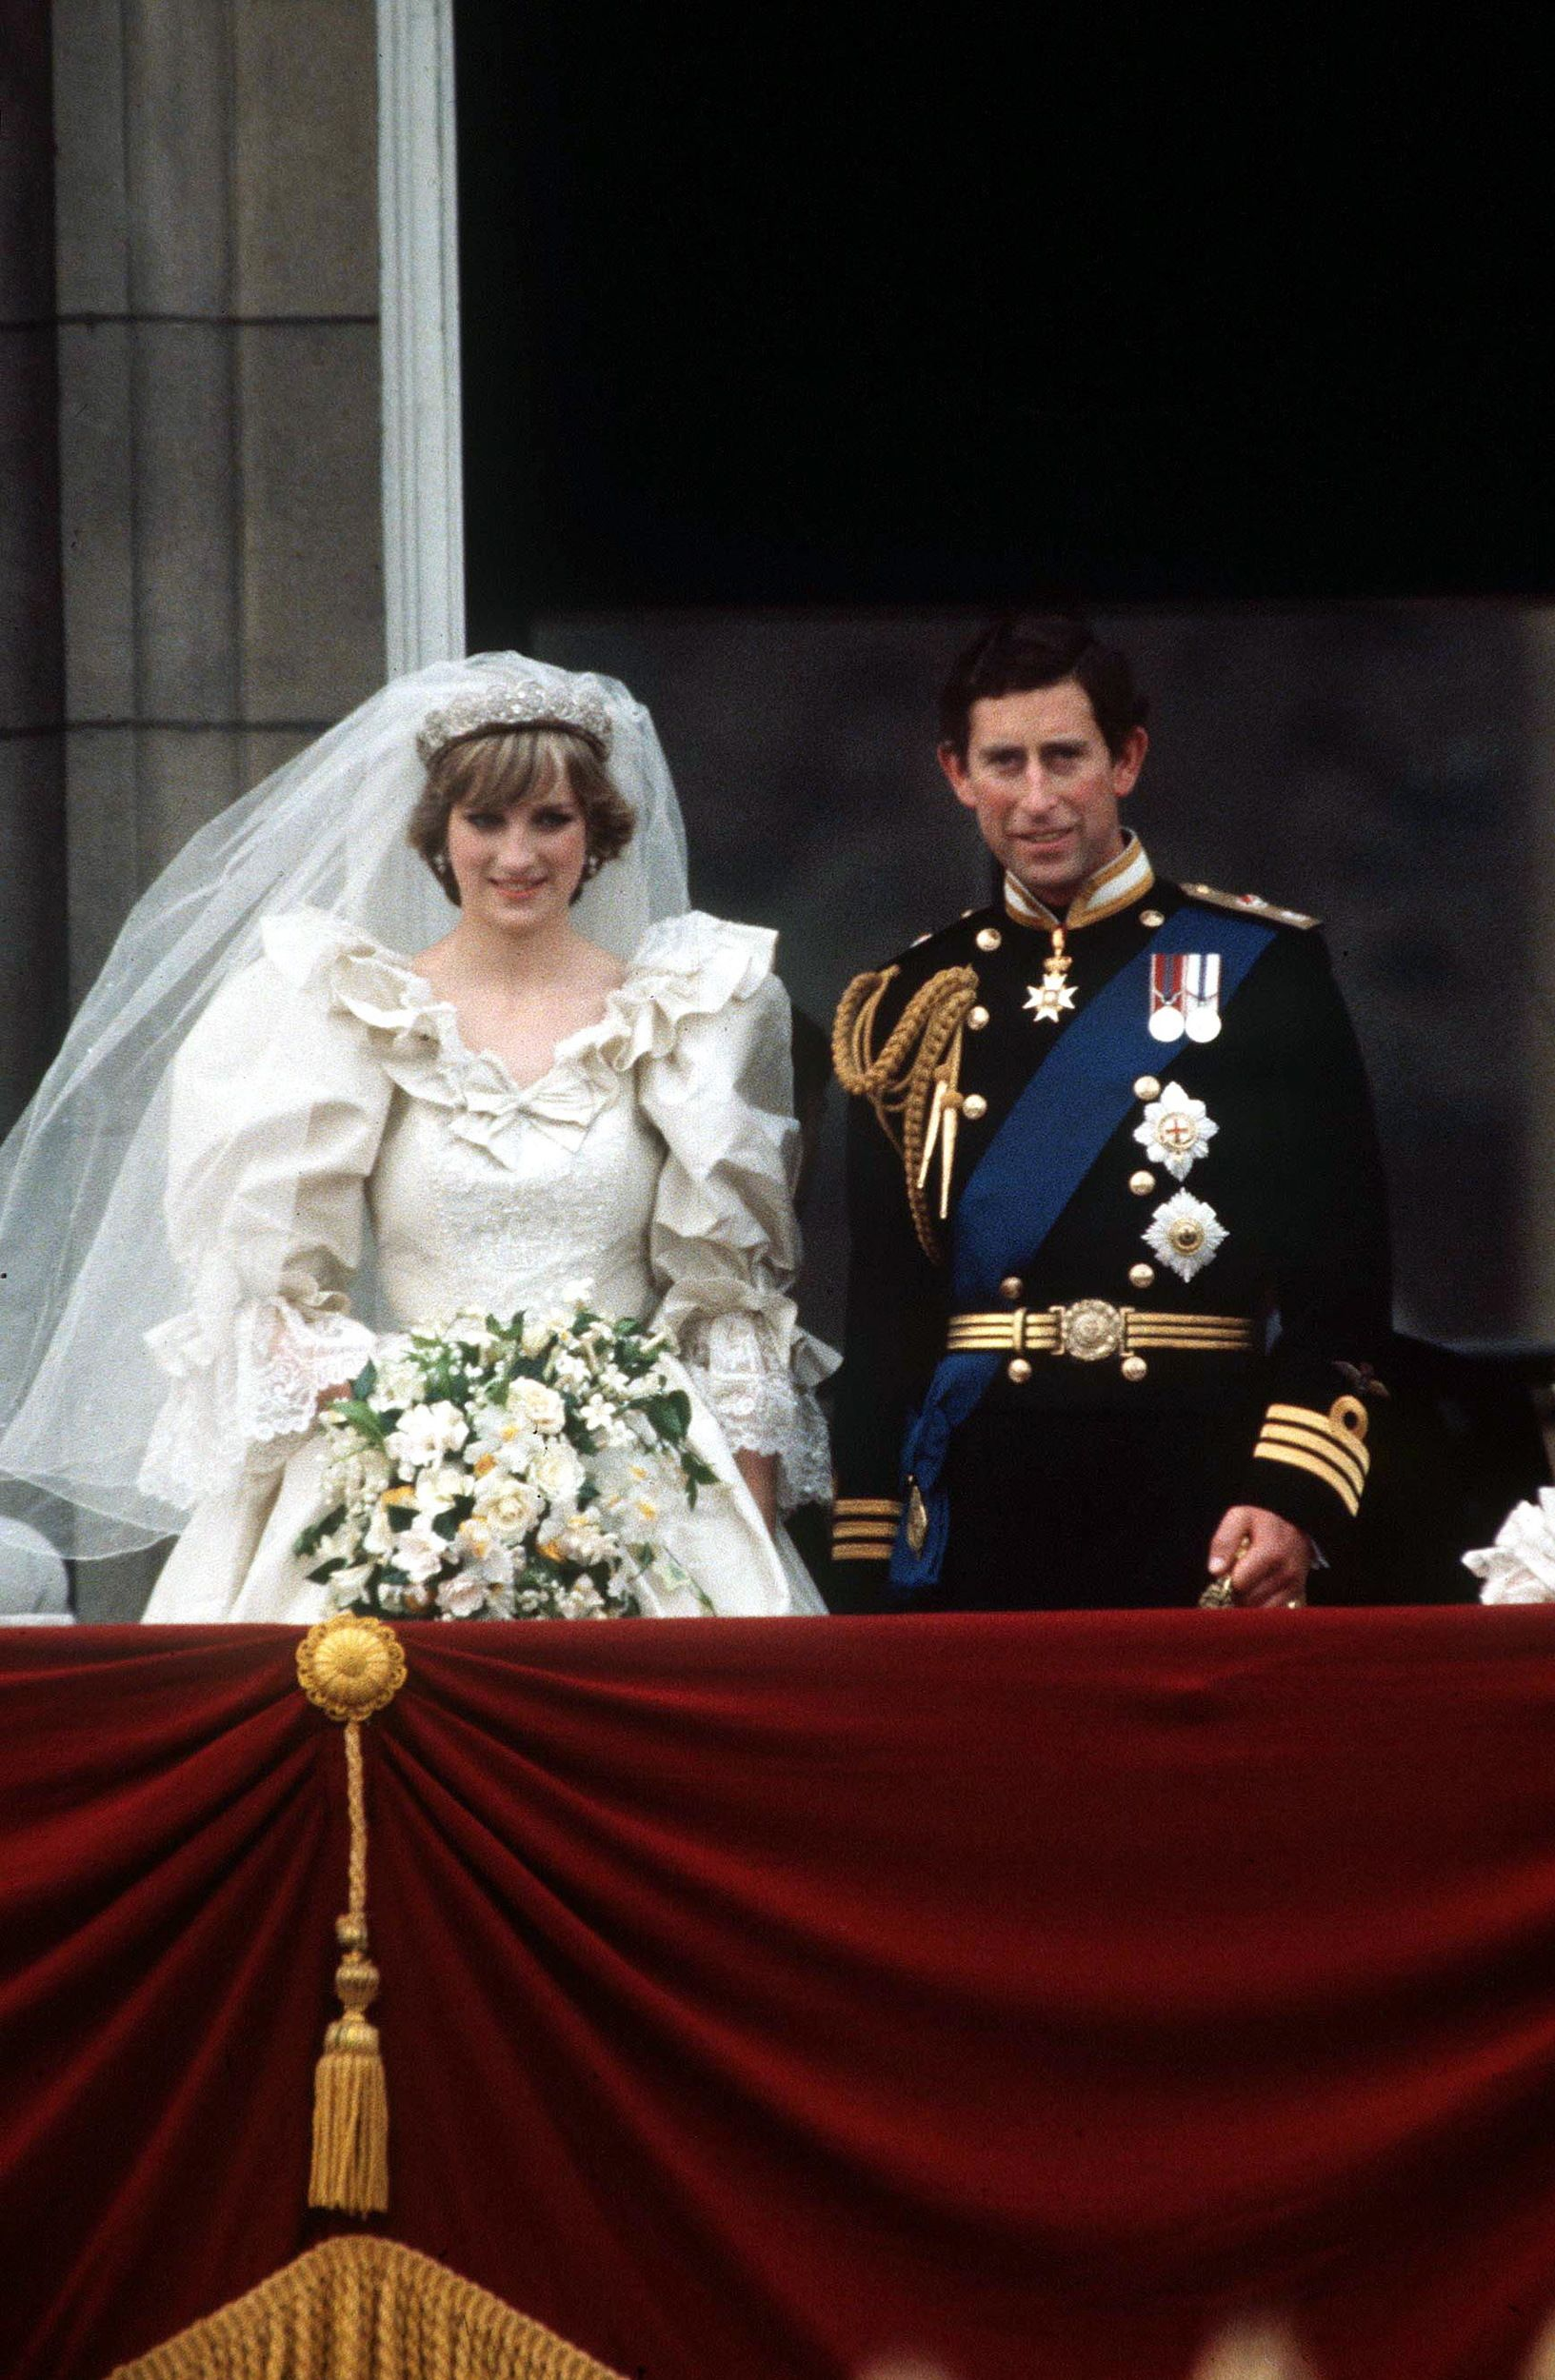 Old photos of Princess Diana and Prince Charles are